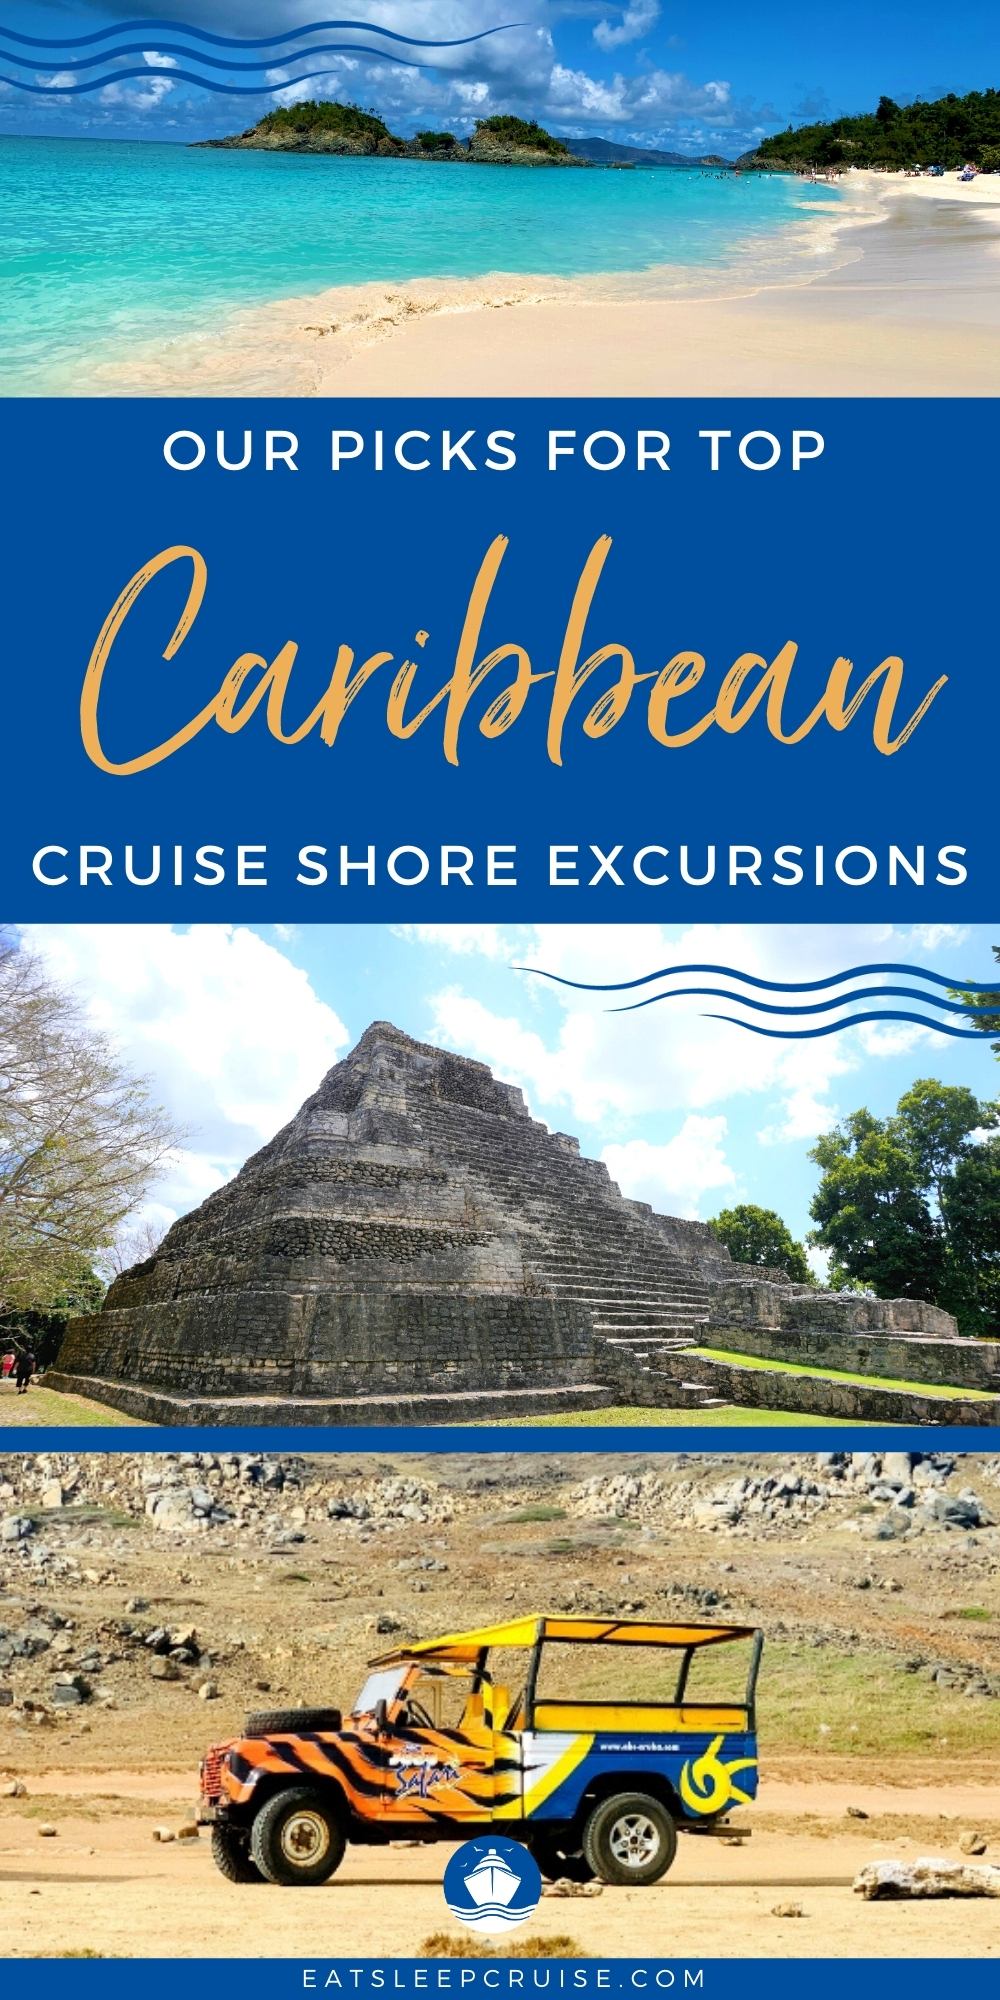 Caribbean Cruise Shore Excursions